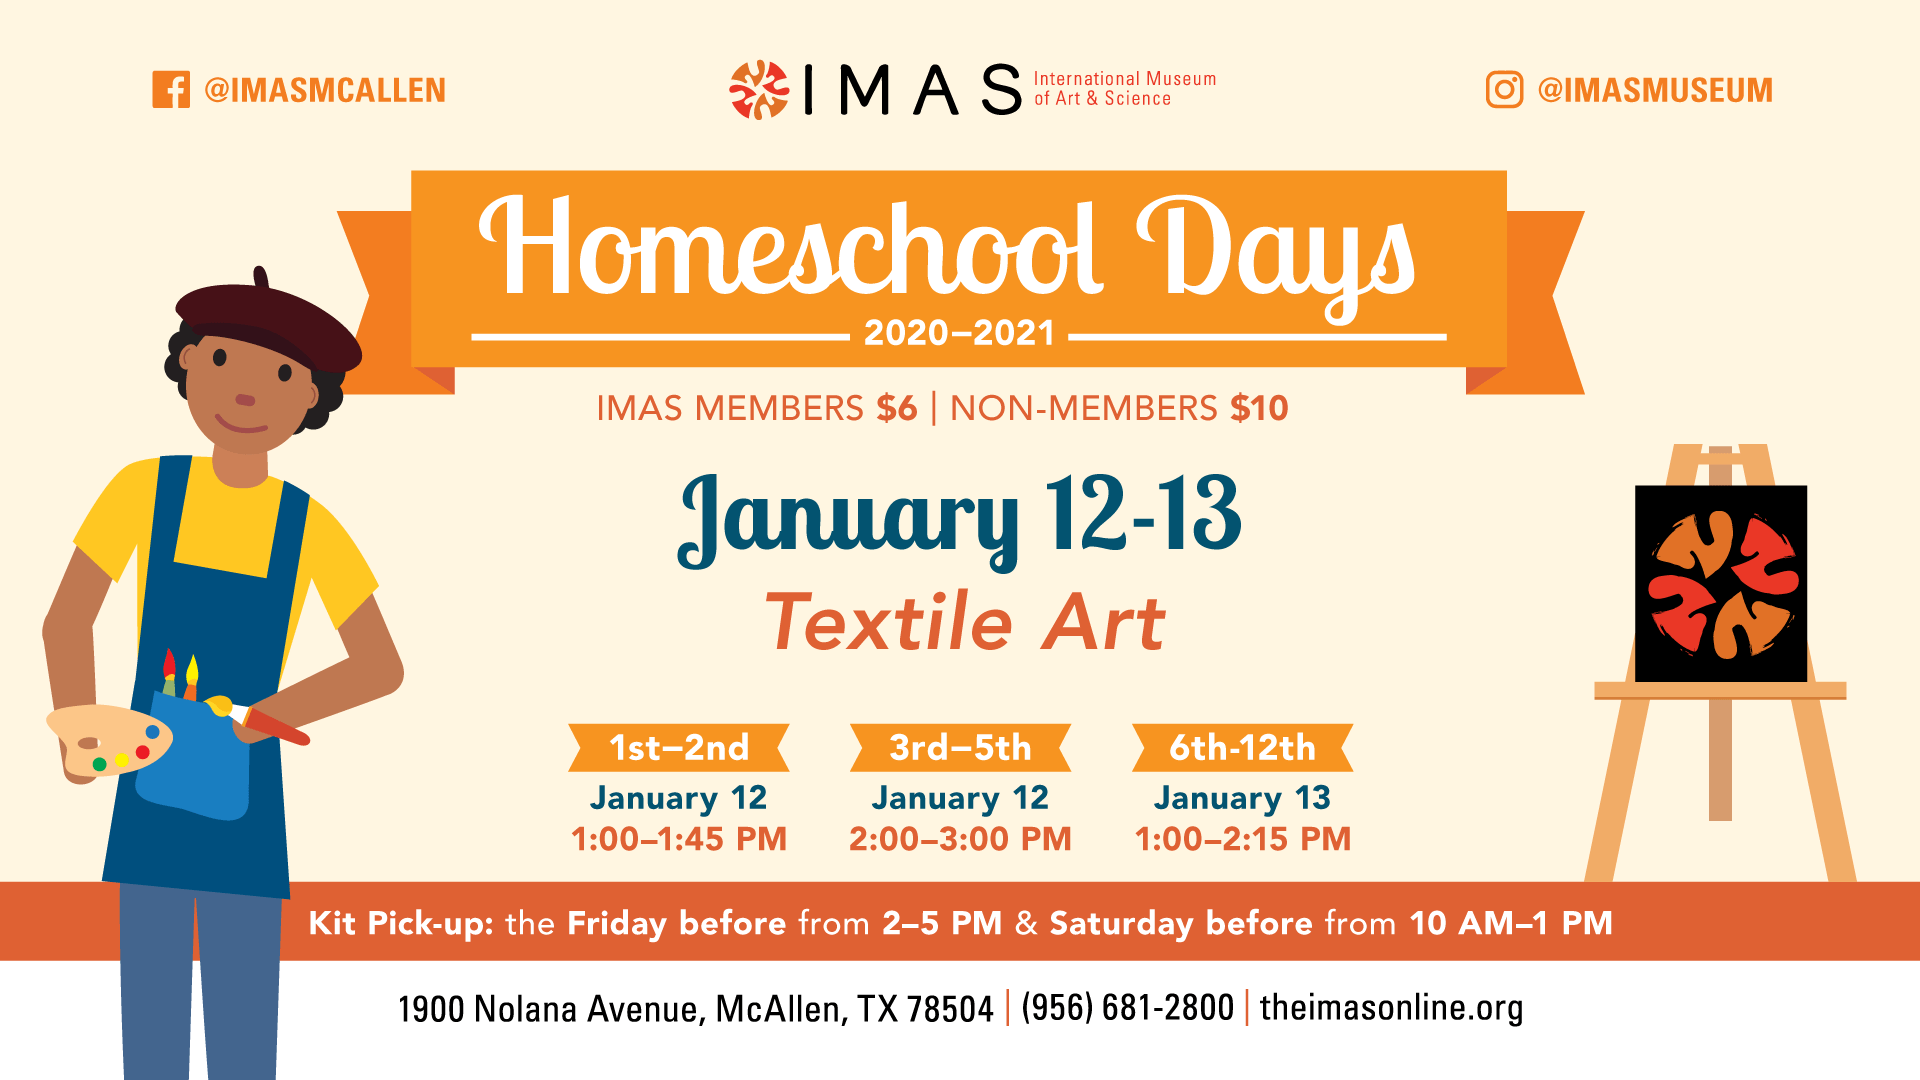 Homeschool Days at IMAS -January